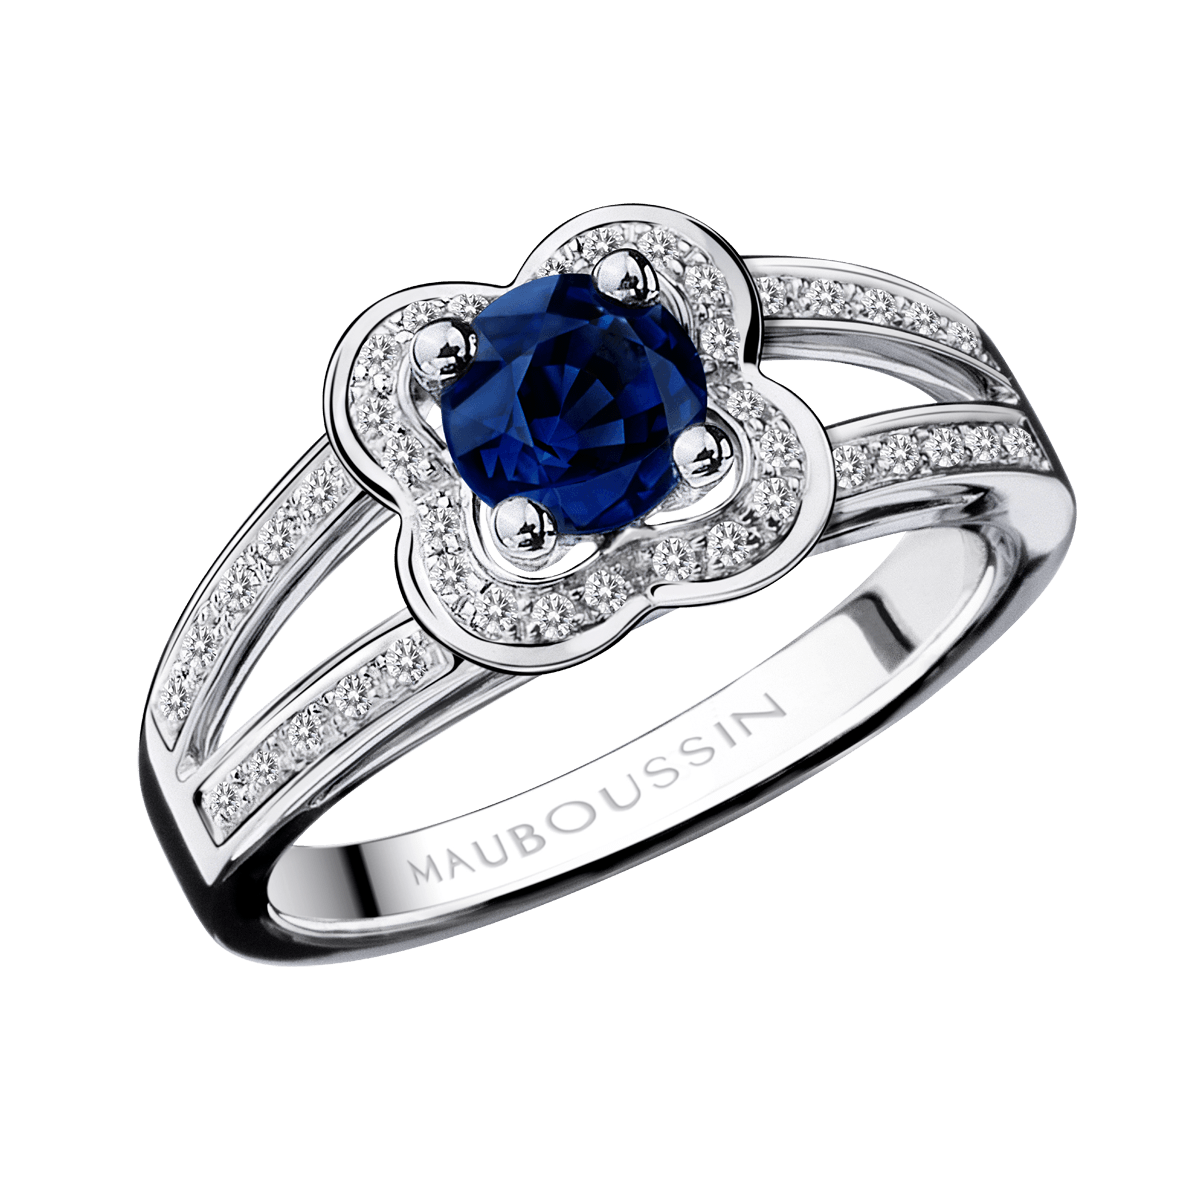 Fabuleux Sex and Love ring, Sapphires, white gold - Mauboussin | MAUBOUSSIN  BT95